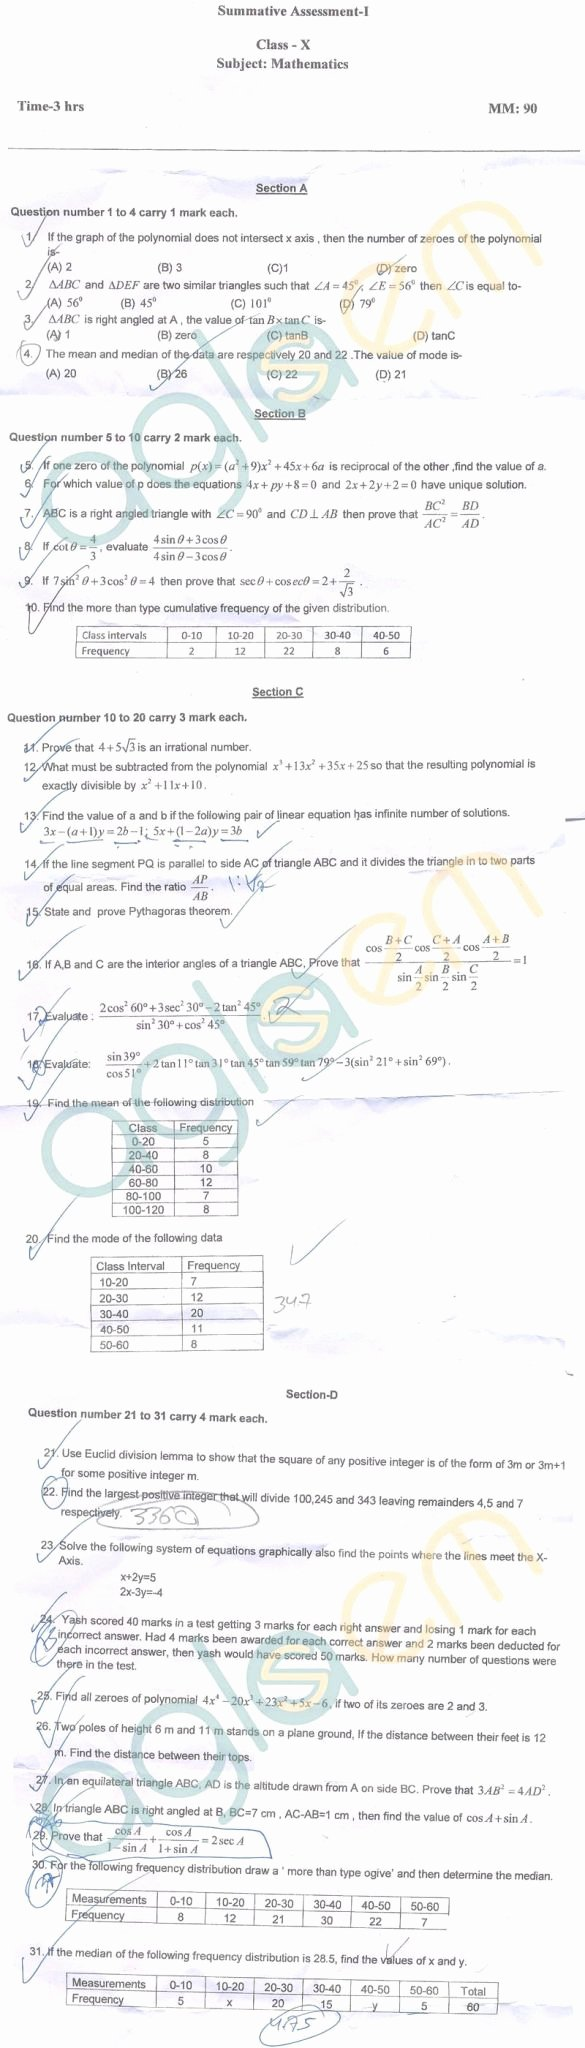 Rational or Irrational Worksheet Lovely Rational and Irrational Numbers Worksheet Kuta